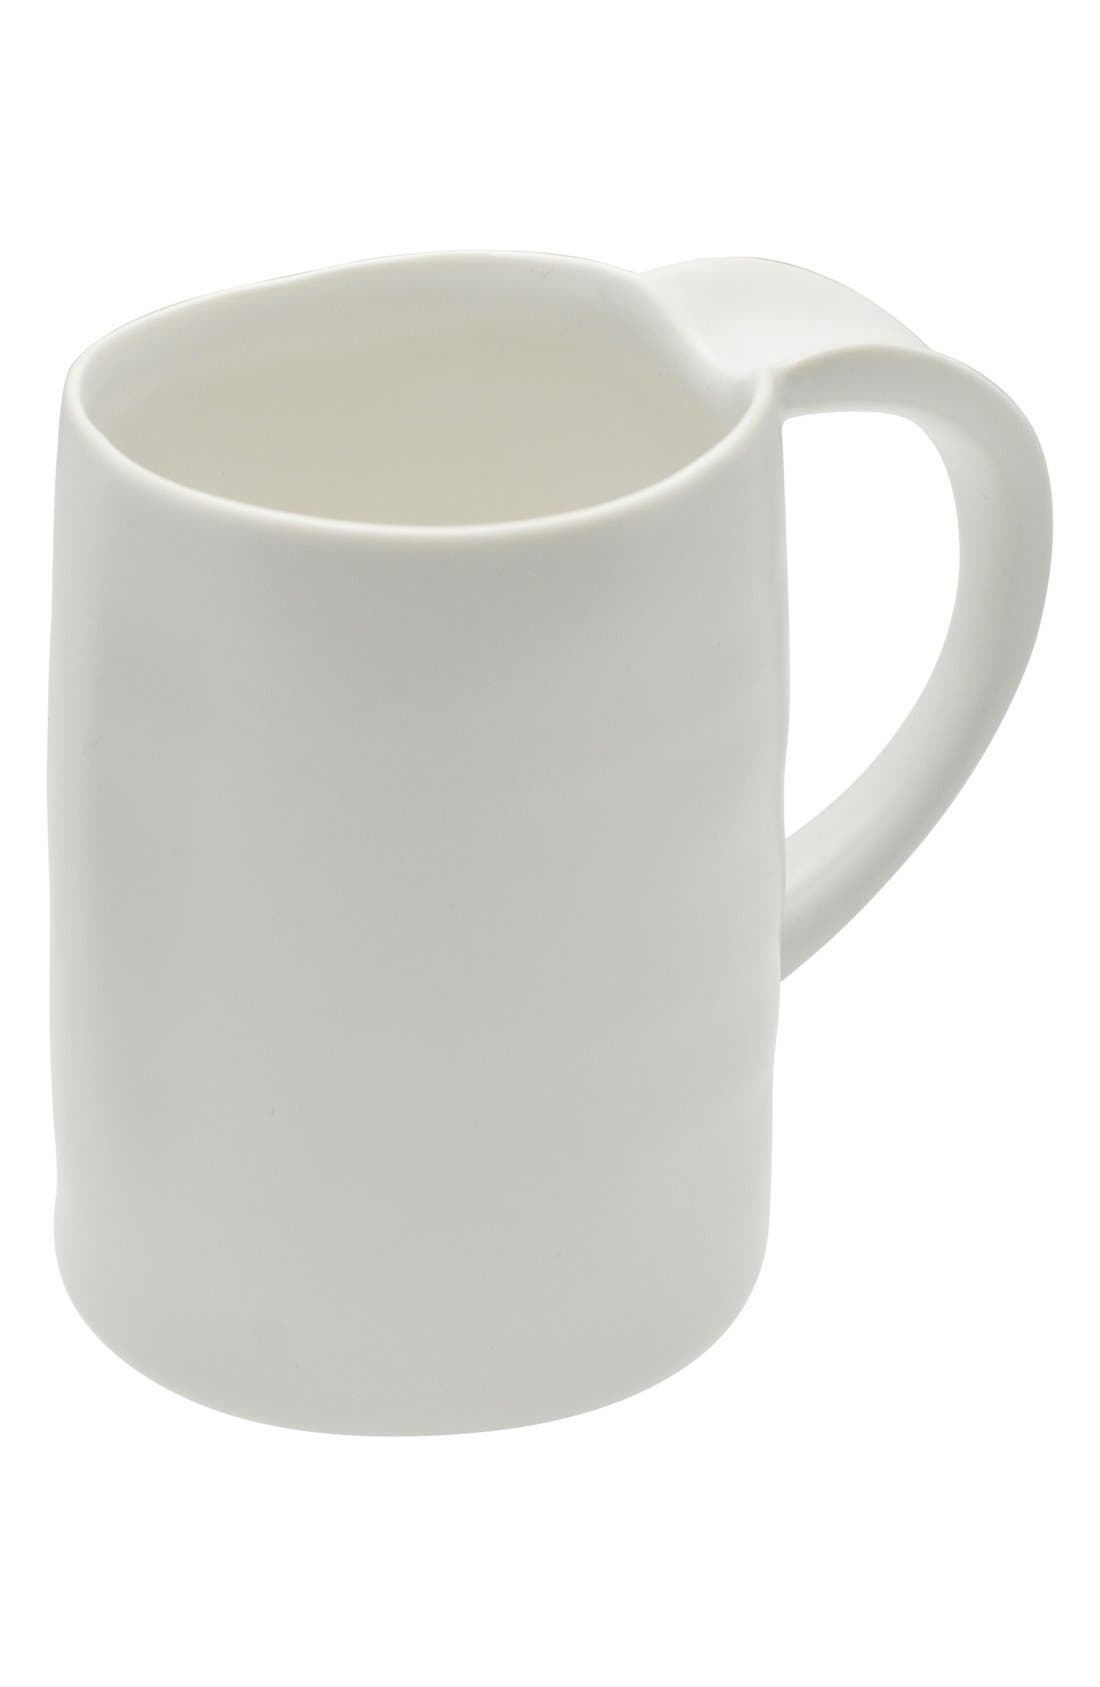 'Ripple' Porcelain Mugs,                         Main,                         color, 100